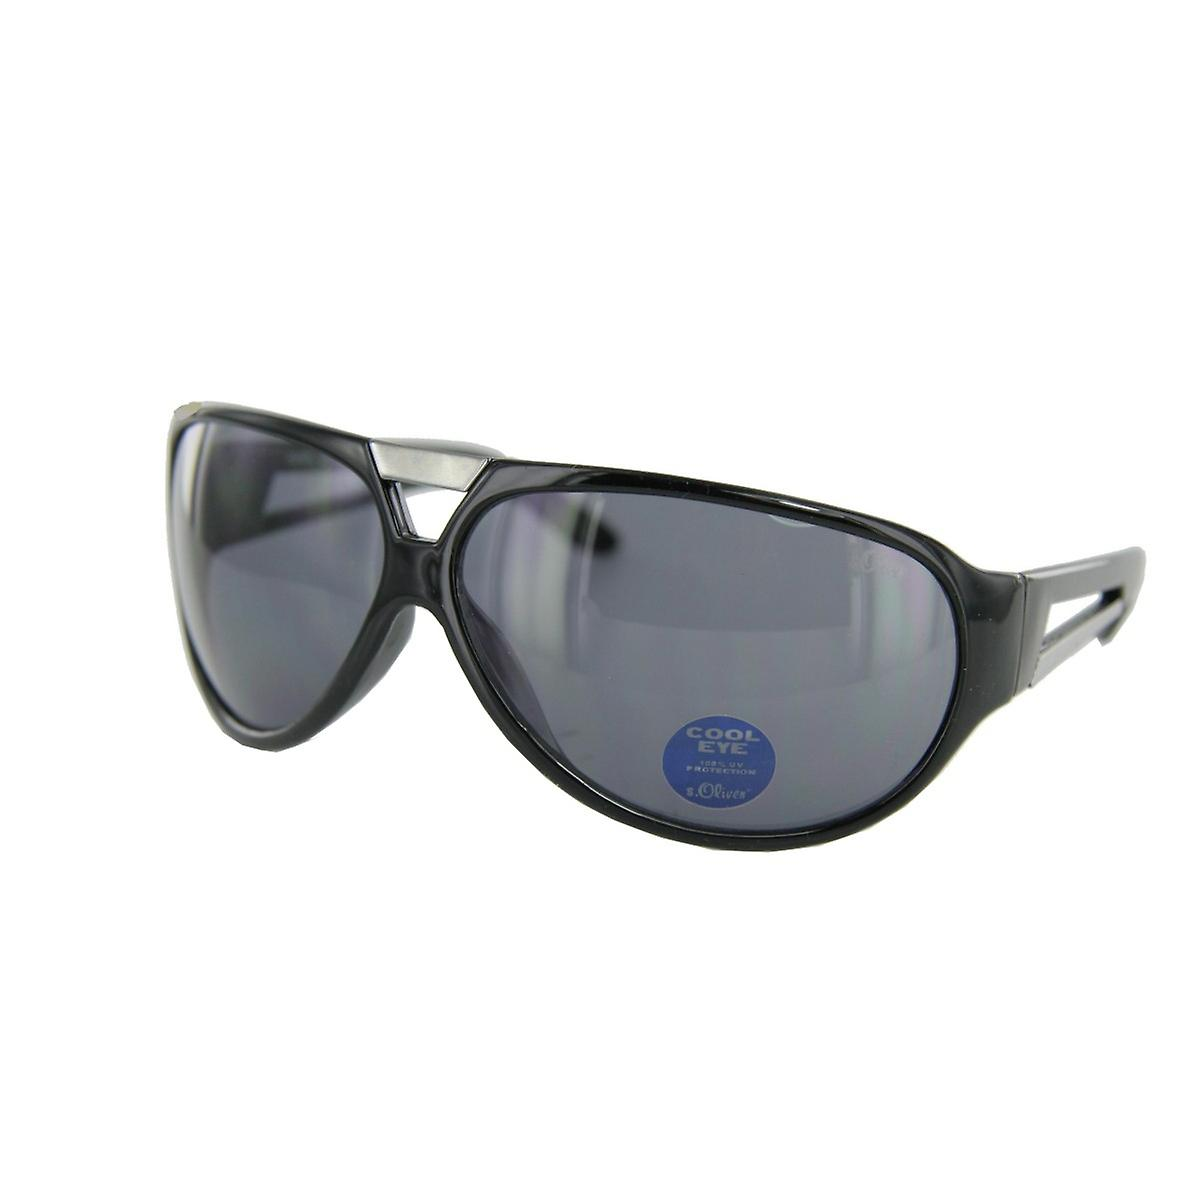 s.Oliver sunglasses 0154 C1 black SO01541